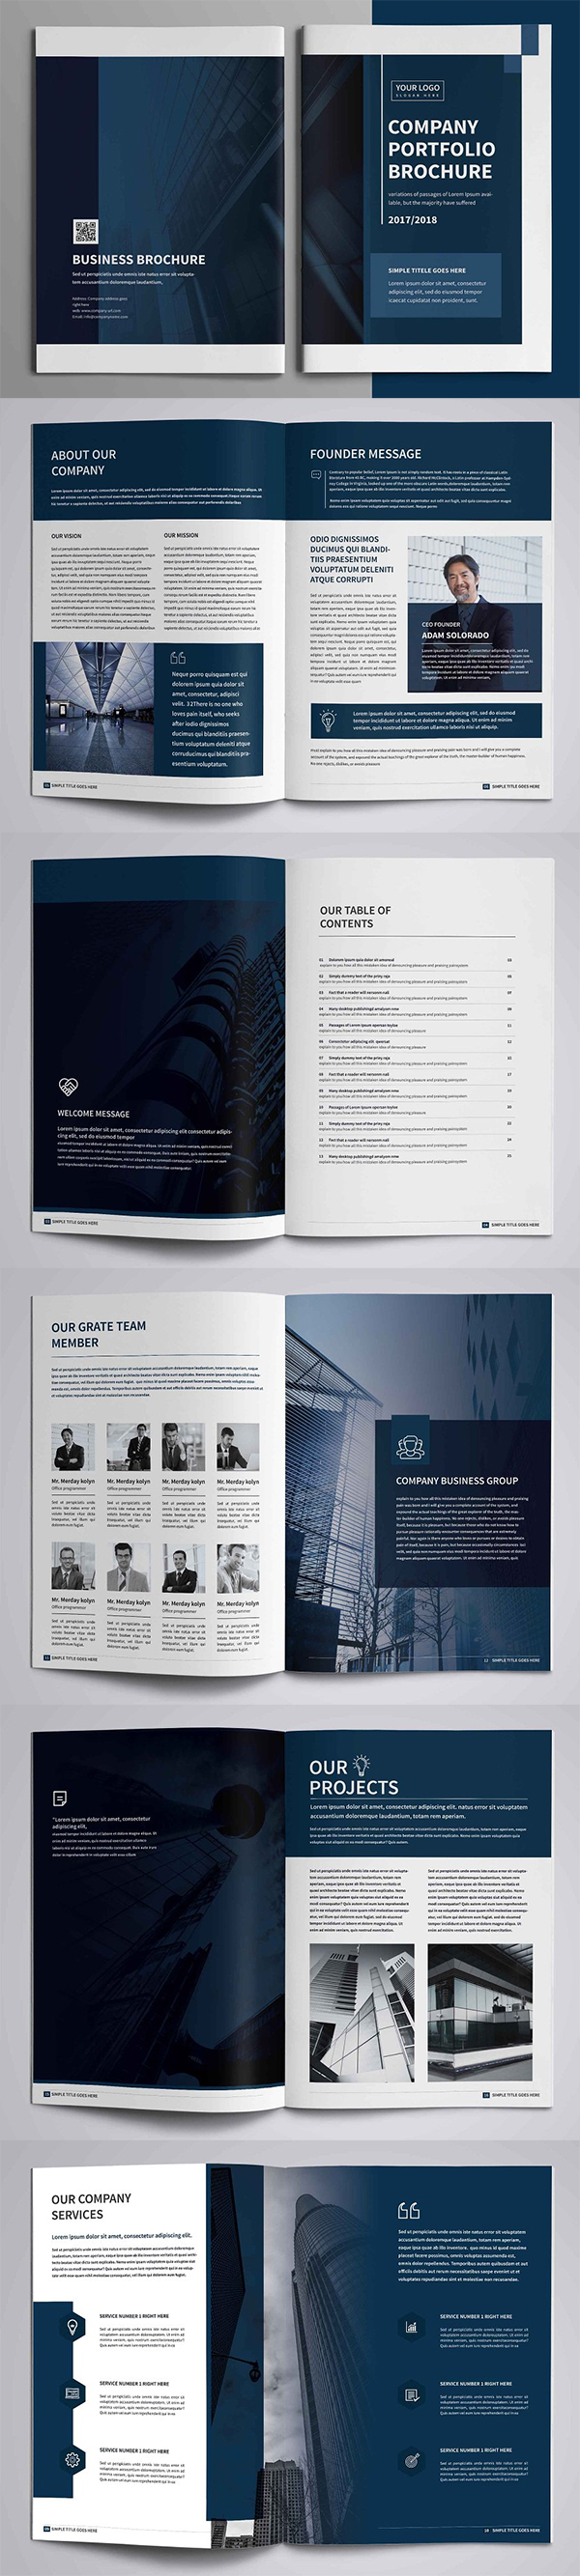 Corporate Company Profile Brochure Template